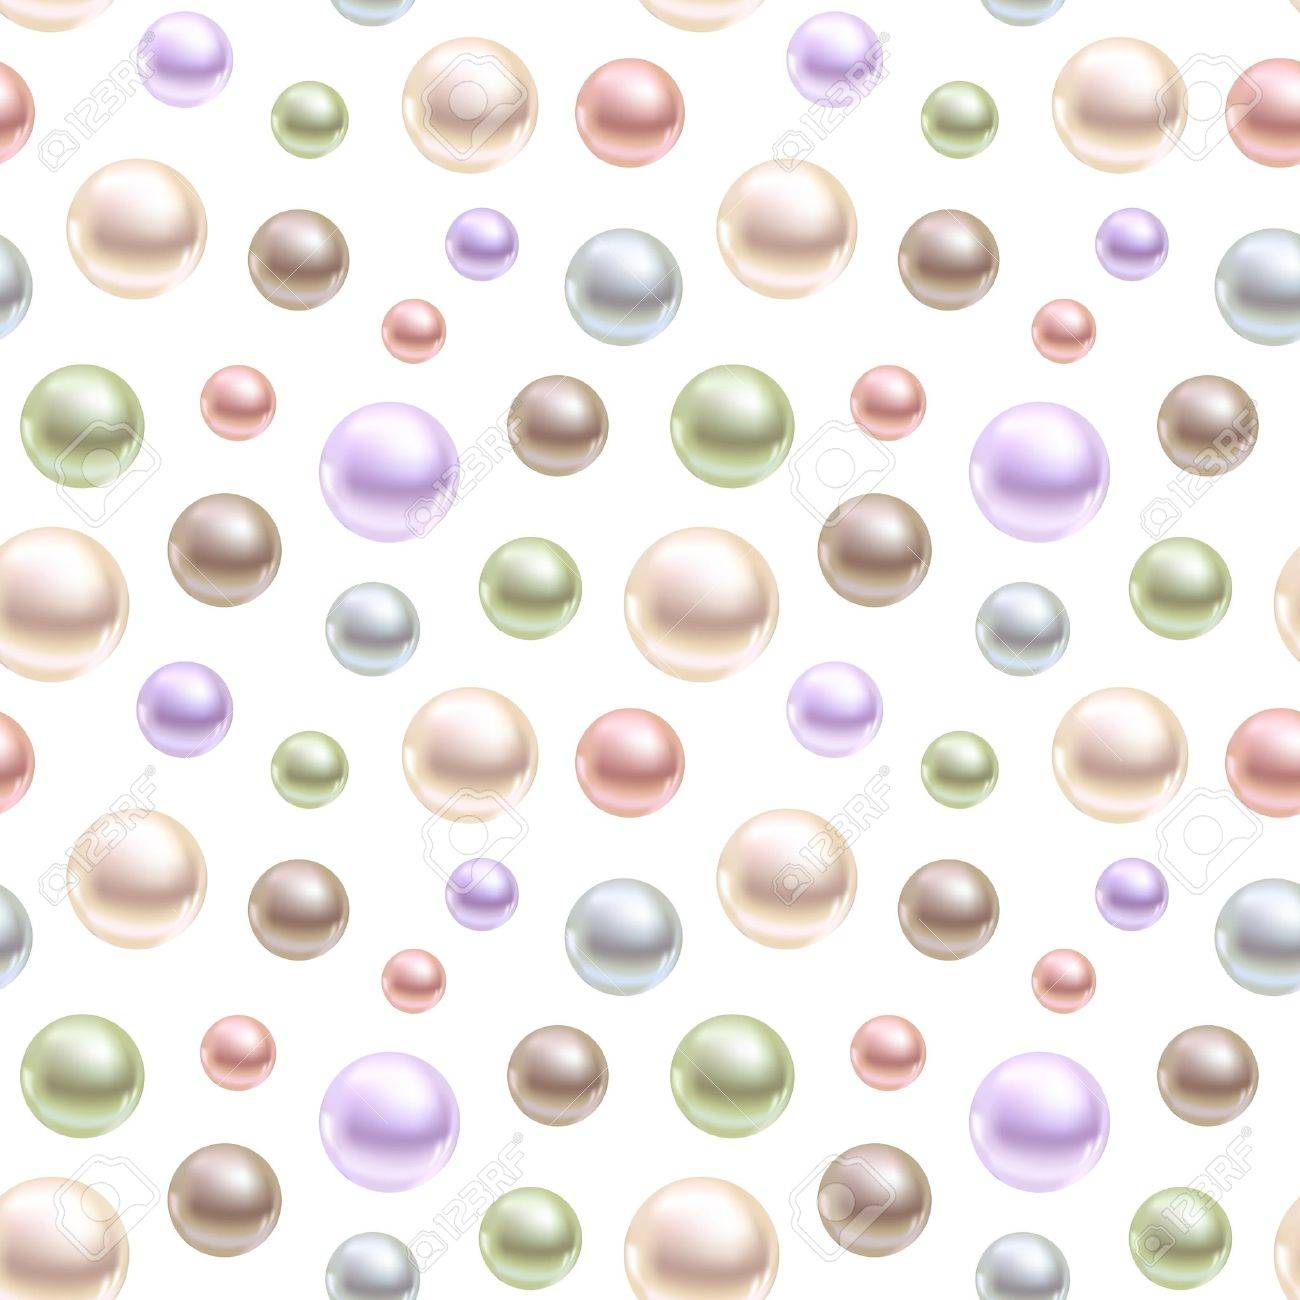 Spherical pearls of different colors Stock Vector - 15775060